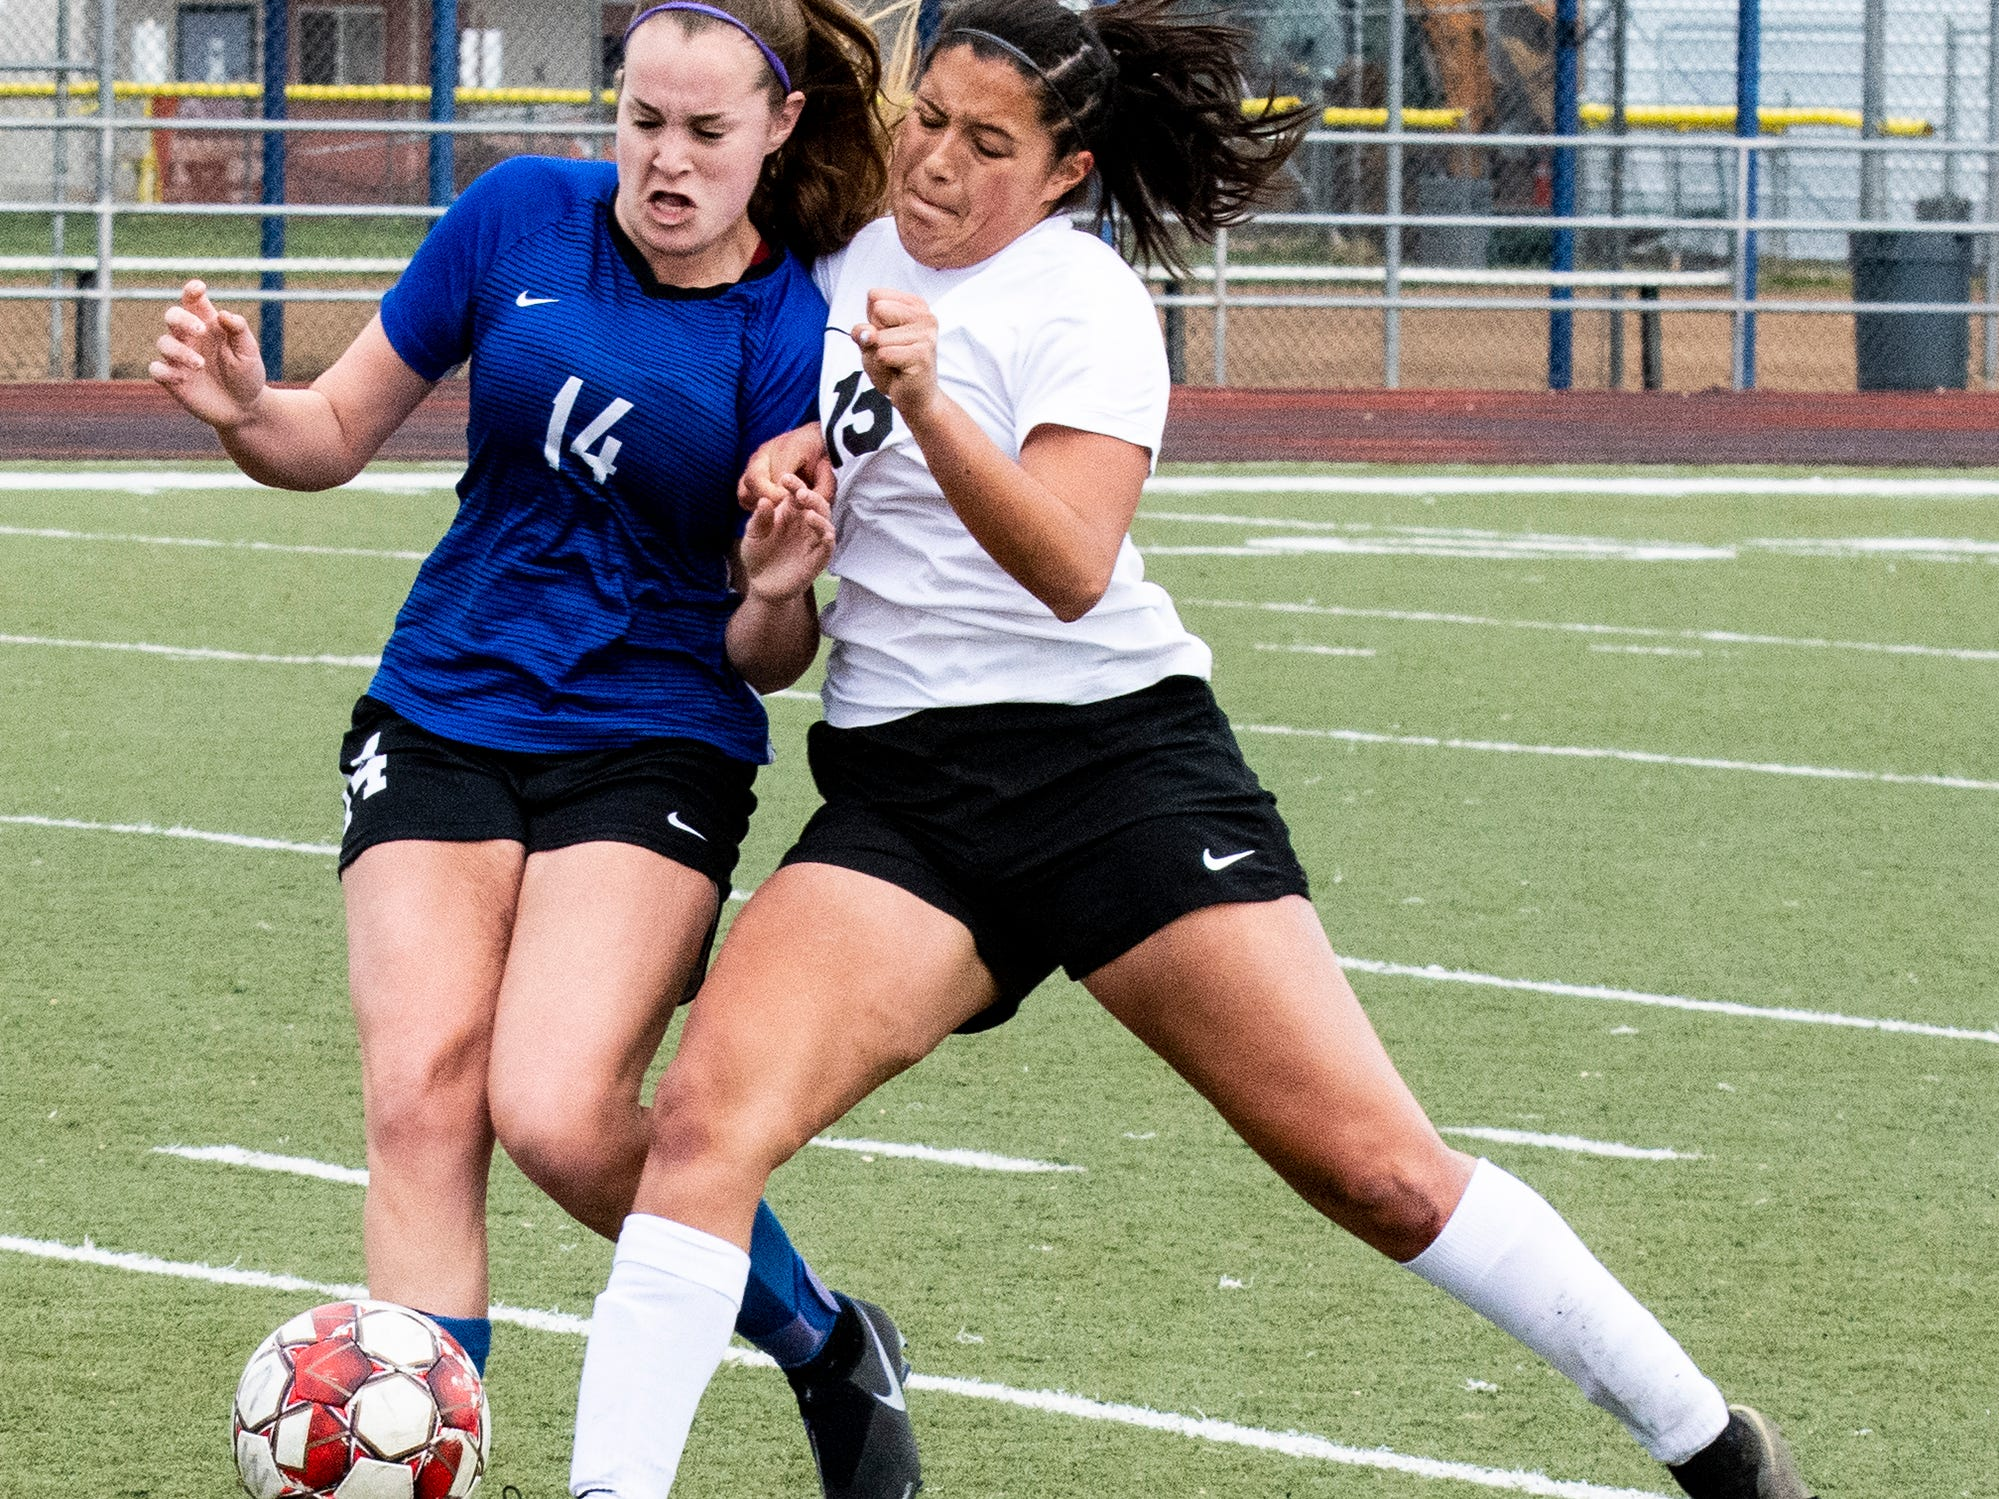 U-Prep's Alexis Hayward, left, and Corning's Nayeli Lara collide Saturday in their Division II Northern Section championship. U-Prep went on to win the title 4-1 on the Panthers' home field. U-Prep now advances to the state playoffs starting Tuesday against an opponent to be named later. Scoring for U-Prep were Isabel Lendman, Ryanne Ampi, Hayward and Savannah Leak. Meanwhile, Corning beat the U-Prep boys 3-0 in their D-2 soccer title game.